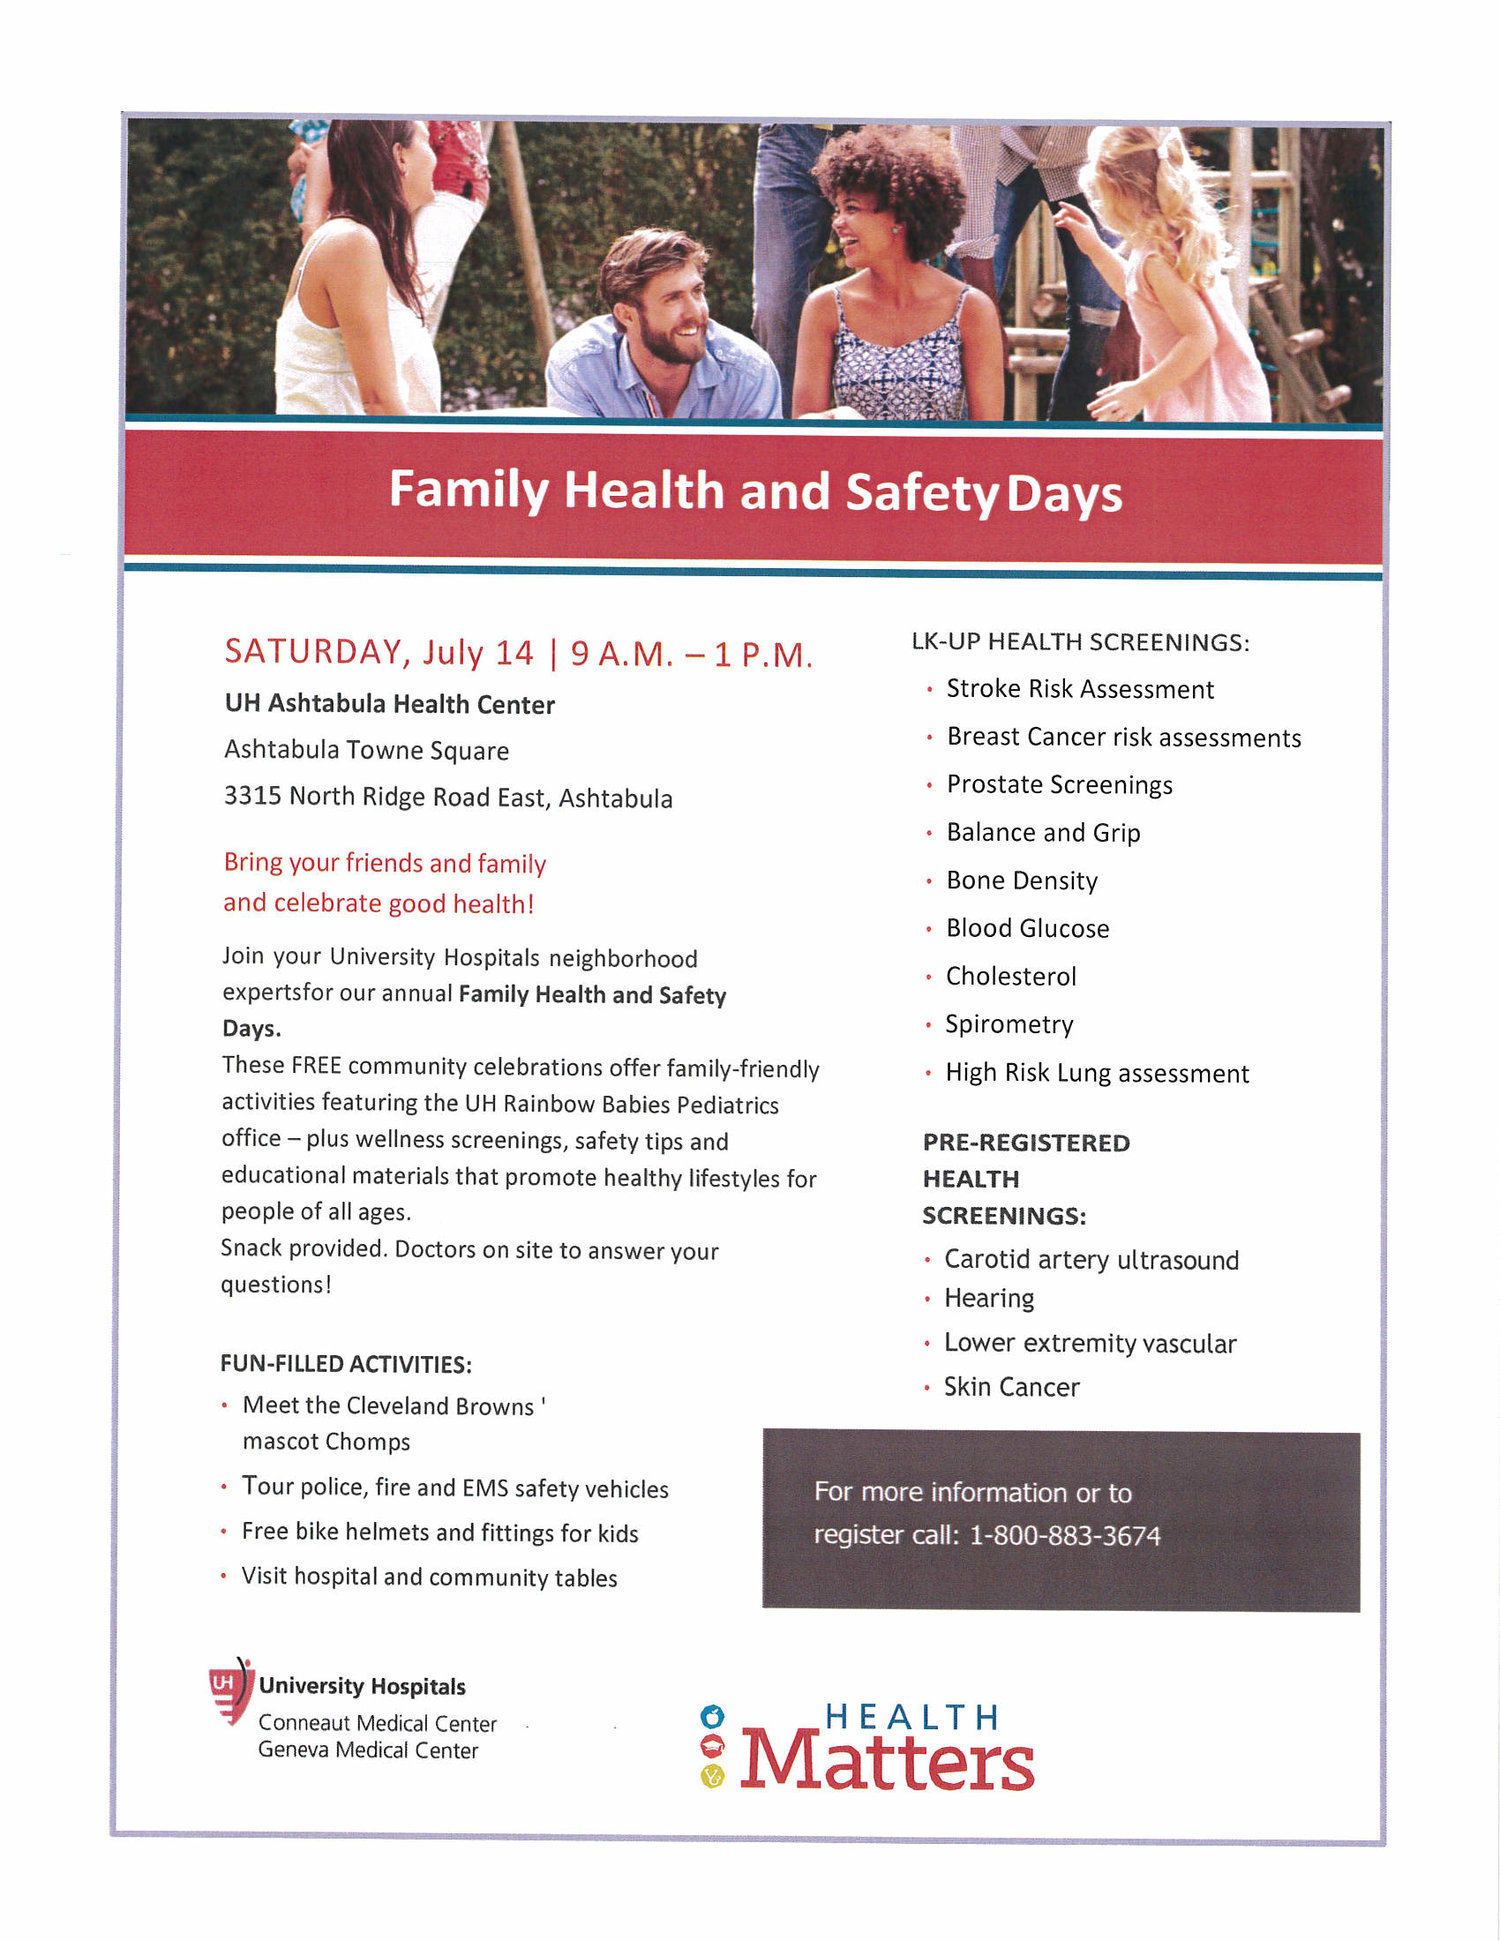 UH Ashtabula Health Center's Family Health and Safety Day